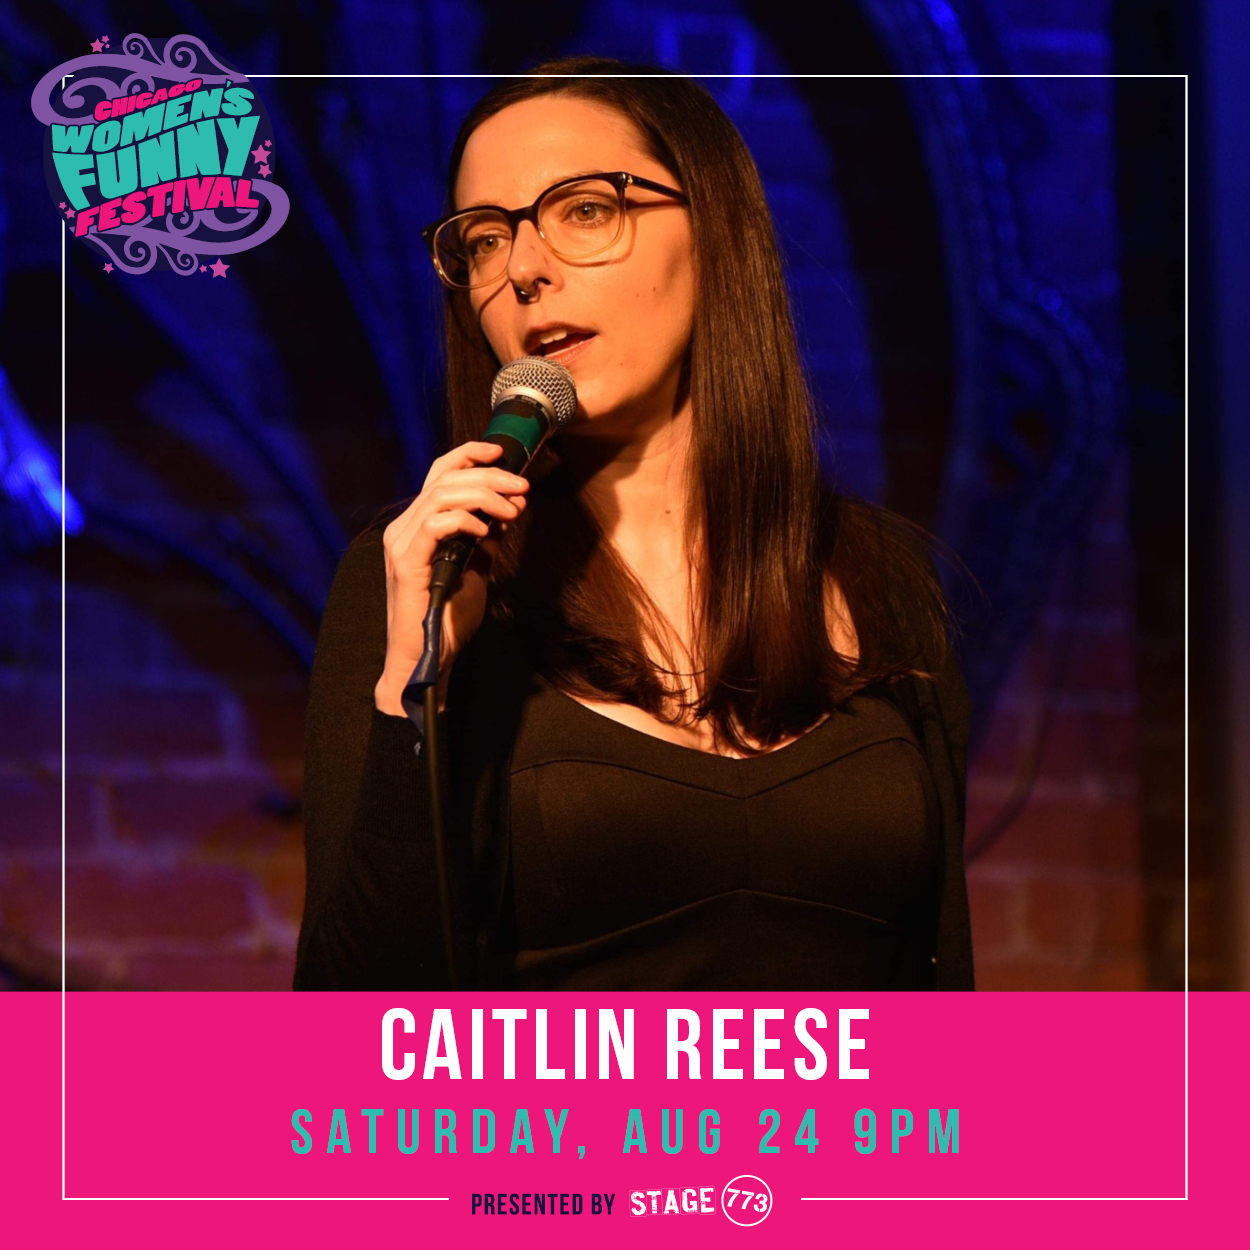 CaitlinReese_Saturday_9PM_CWFF20193.jpg